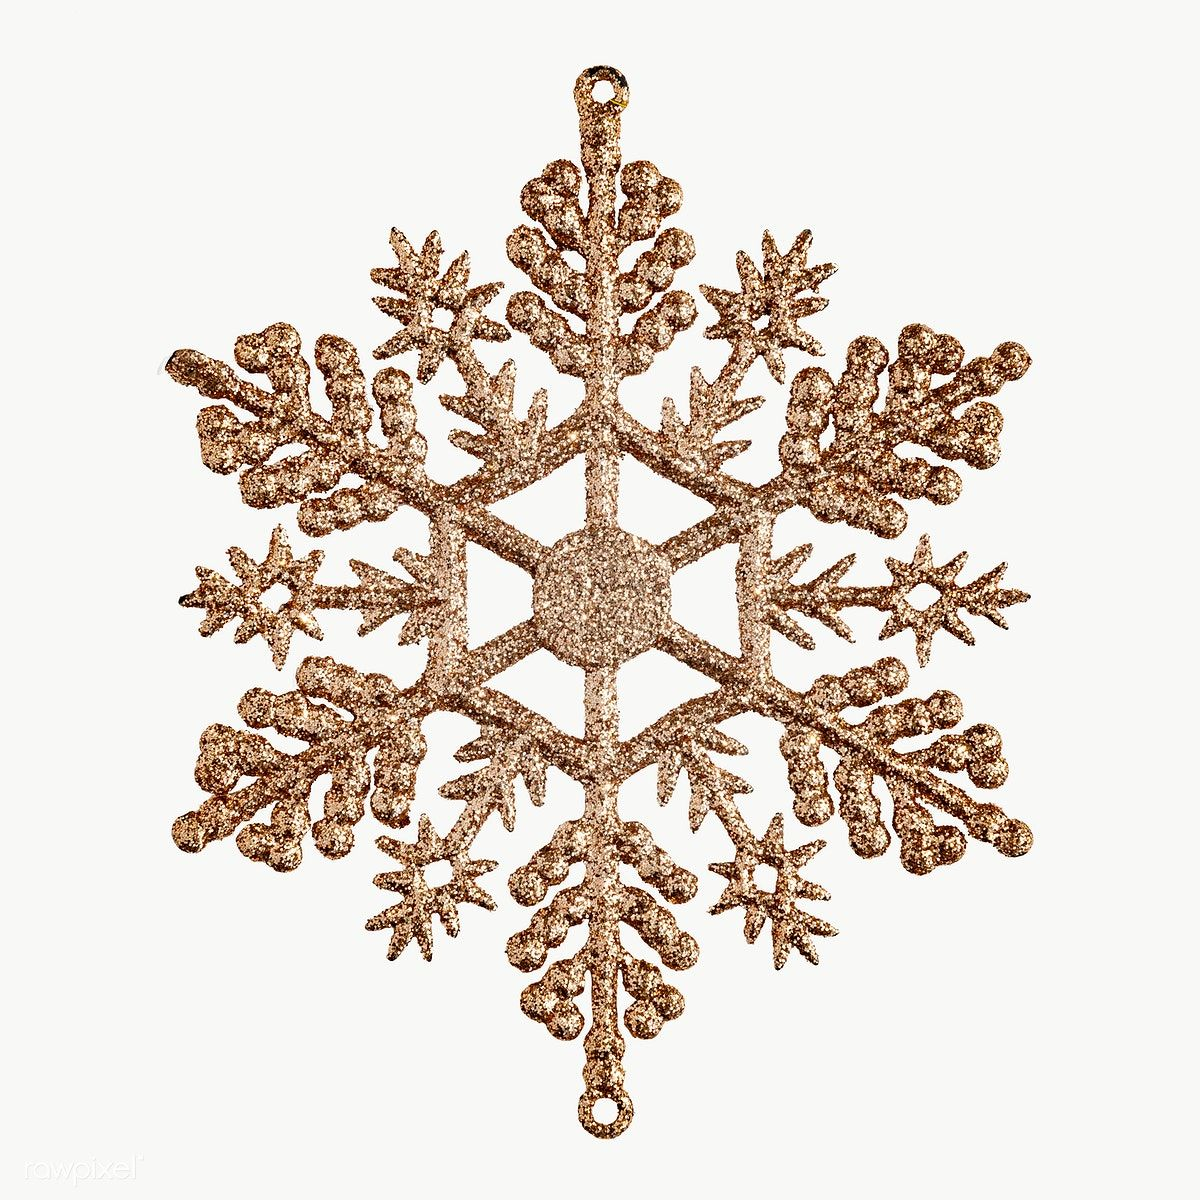 Download Premium Png Of A Gold Snowflake Christmas Ornament On Transparent Gold Snowflake Christmas Ornaments Snowflakes